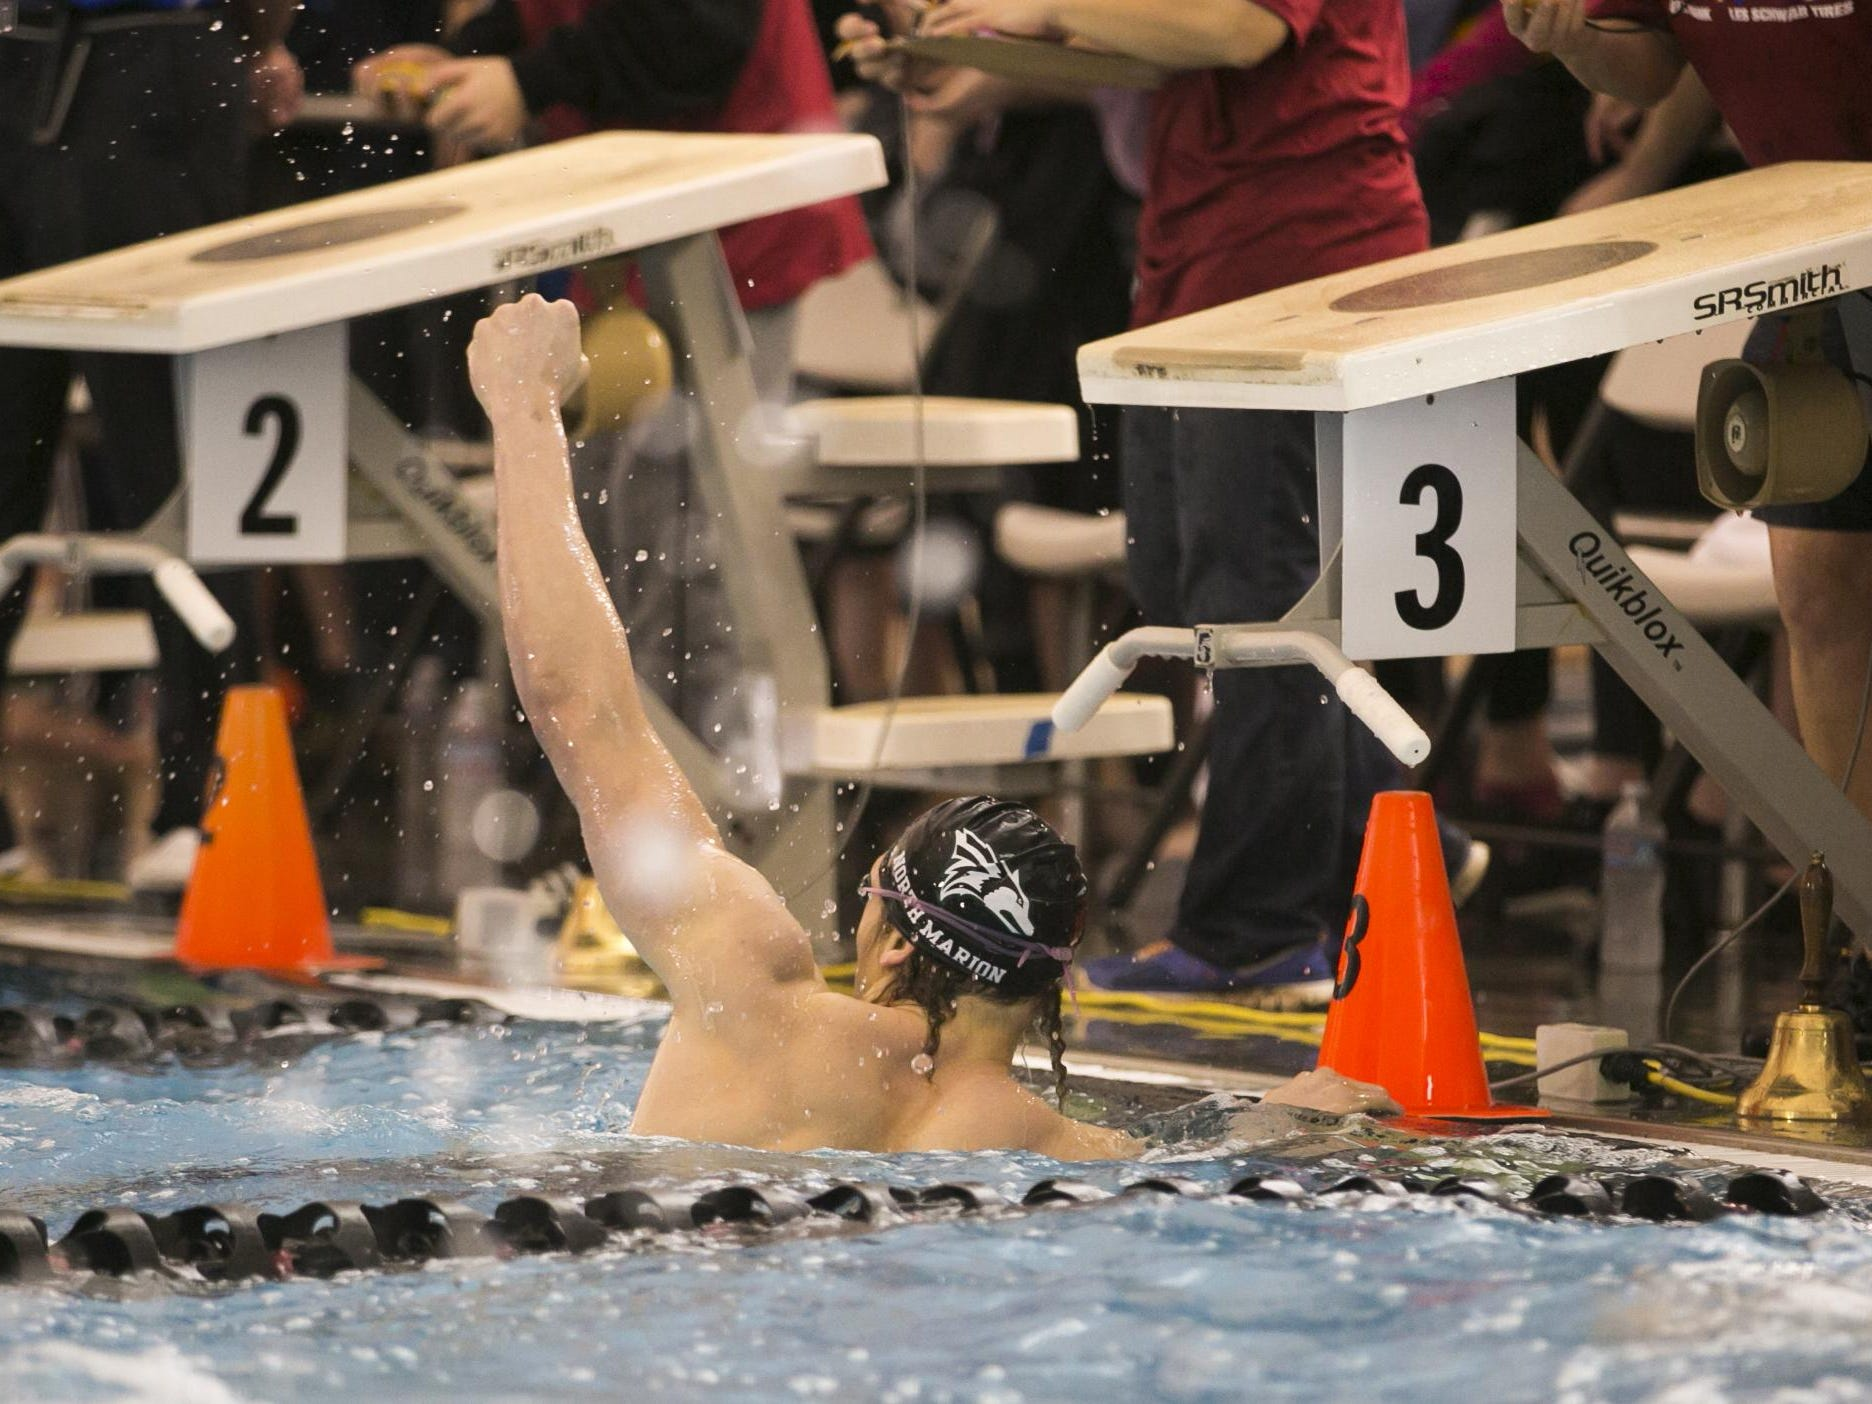 North Marion's Noah Norris pumps his fist in the air after swimming the boys 100-yard freestyle at the OSAA Swimming State Championships at Mount Hood Community College on Saturday, Feb. 20, 2016.